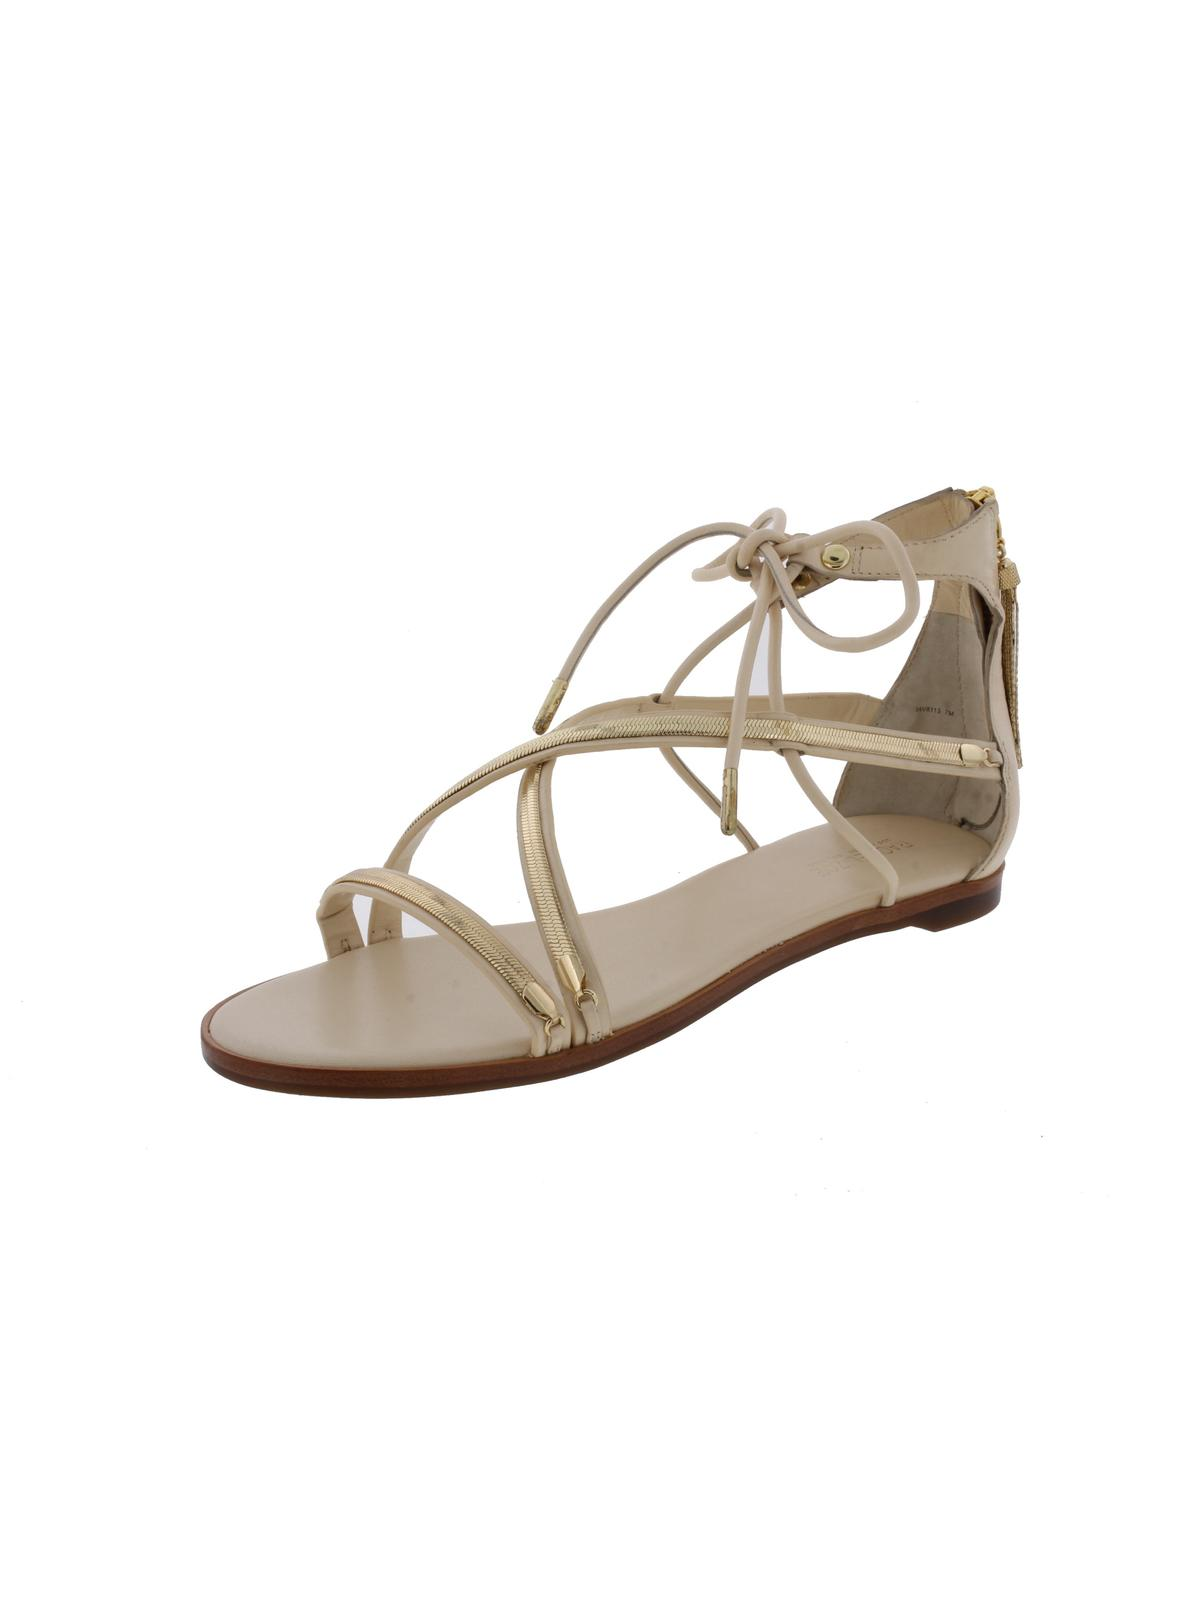 Rachel Zoe Womens Babette Embellished Open Toe Flat Sandals